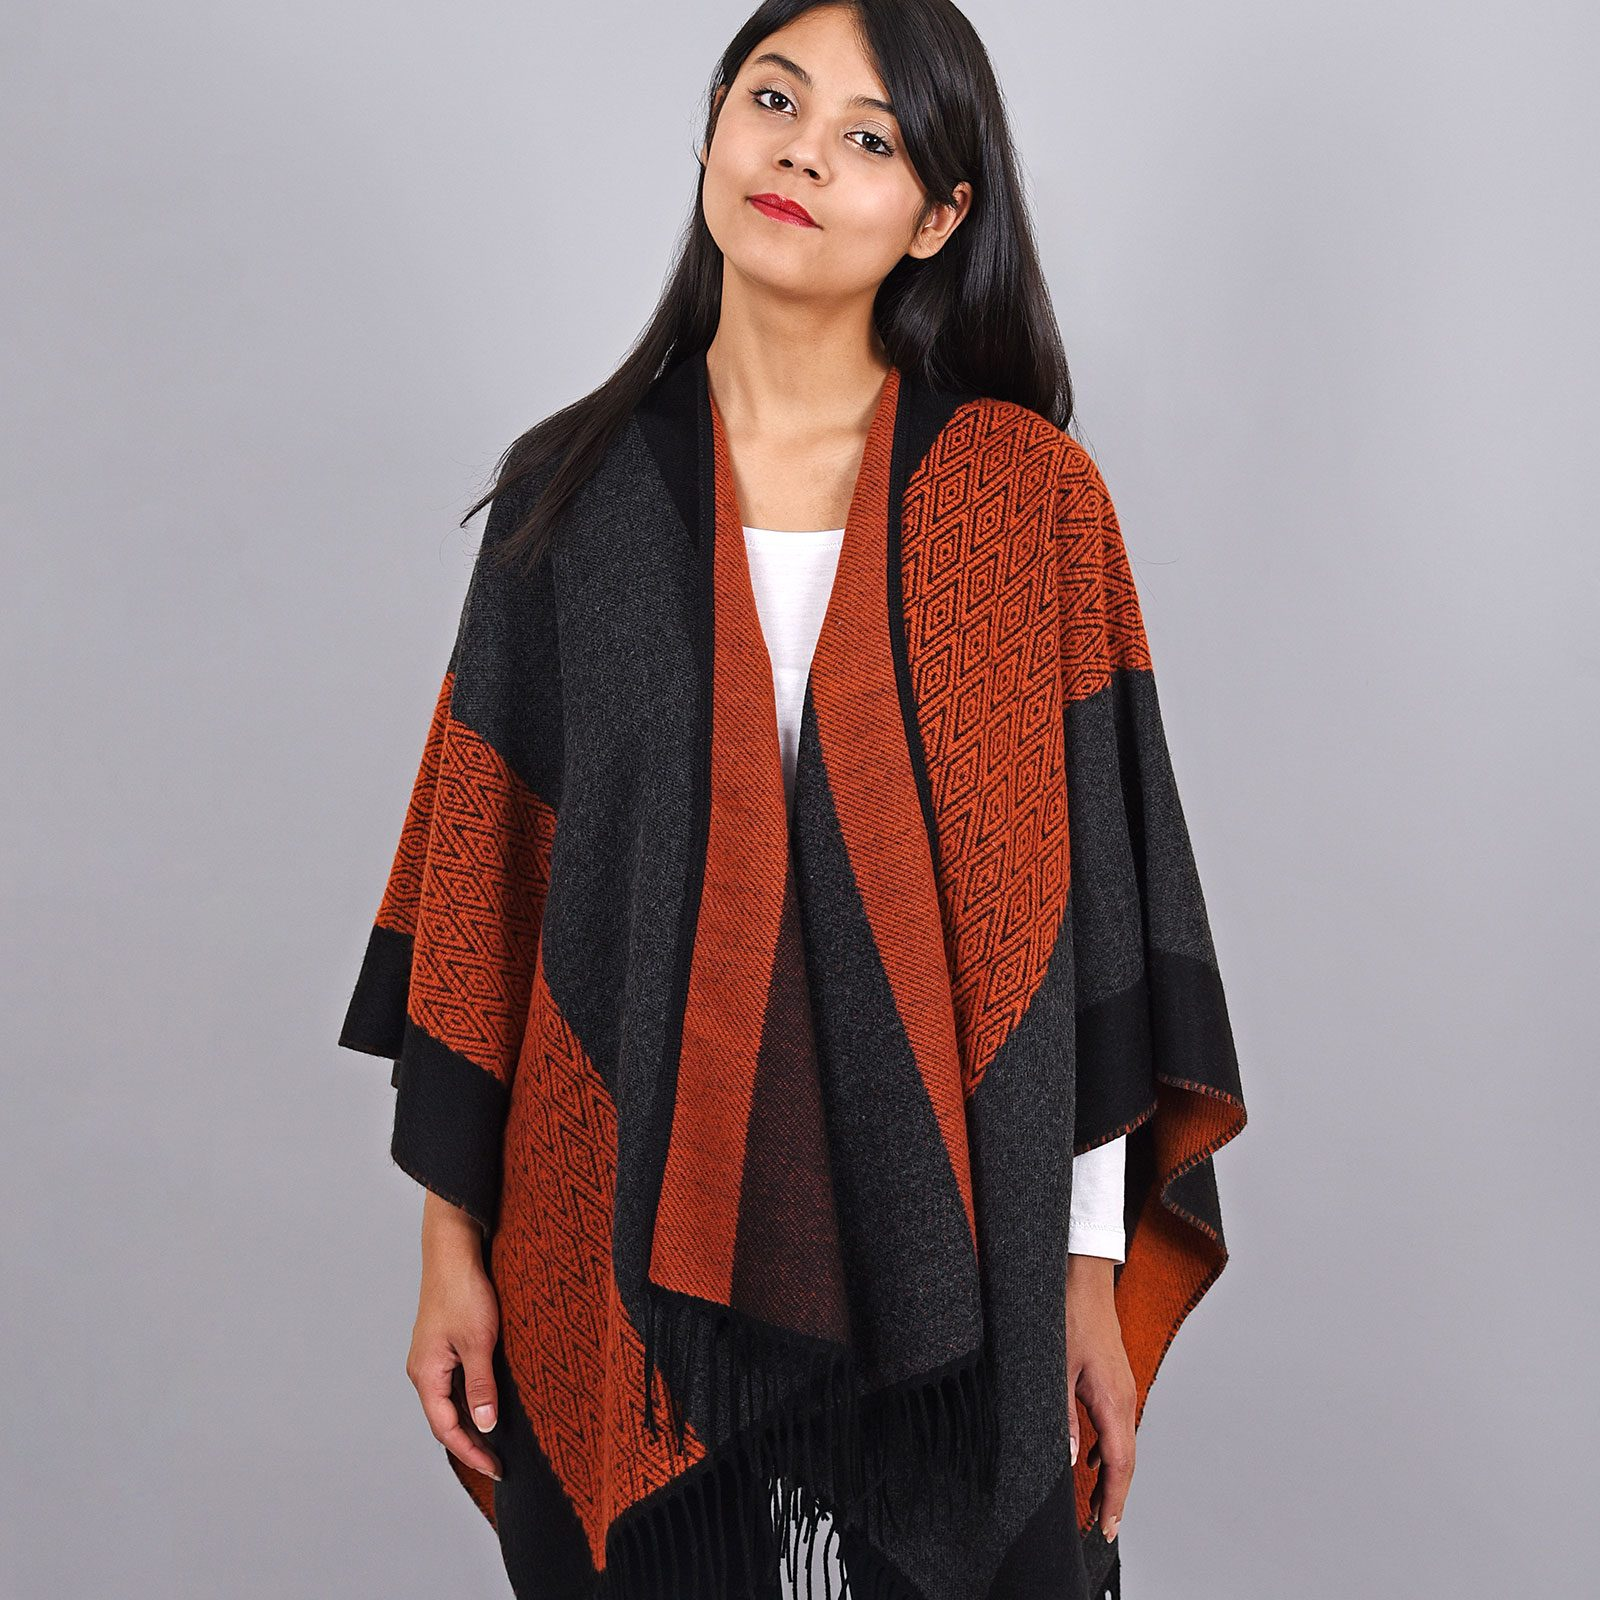 http://lookbook.allee-du-foulard.fr/wp-content/uploads/2018/11/AT-03964-VF16-poncho-femme-rouge-noir-1600x1600.jpg